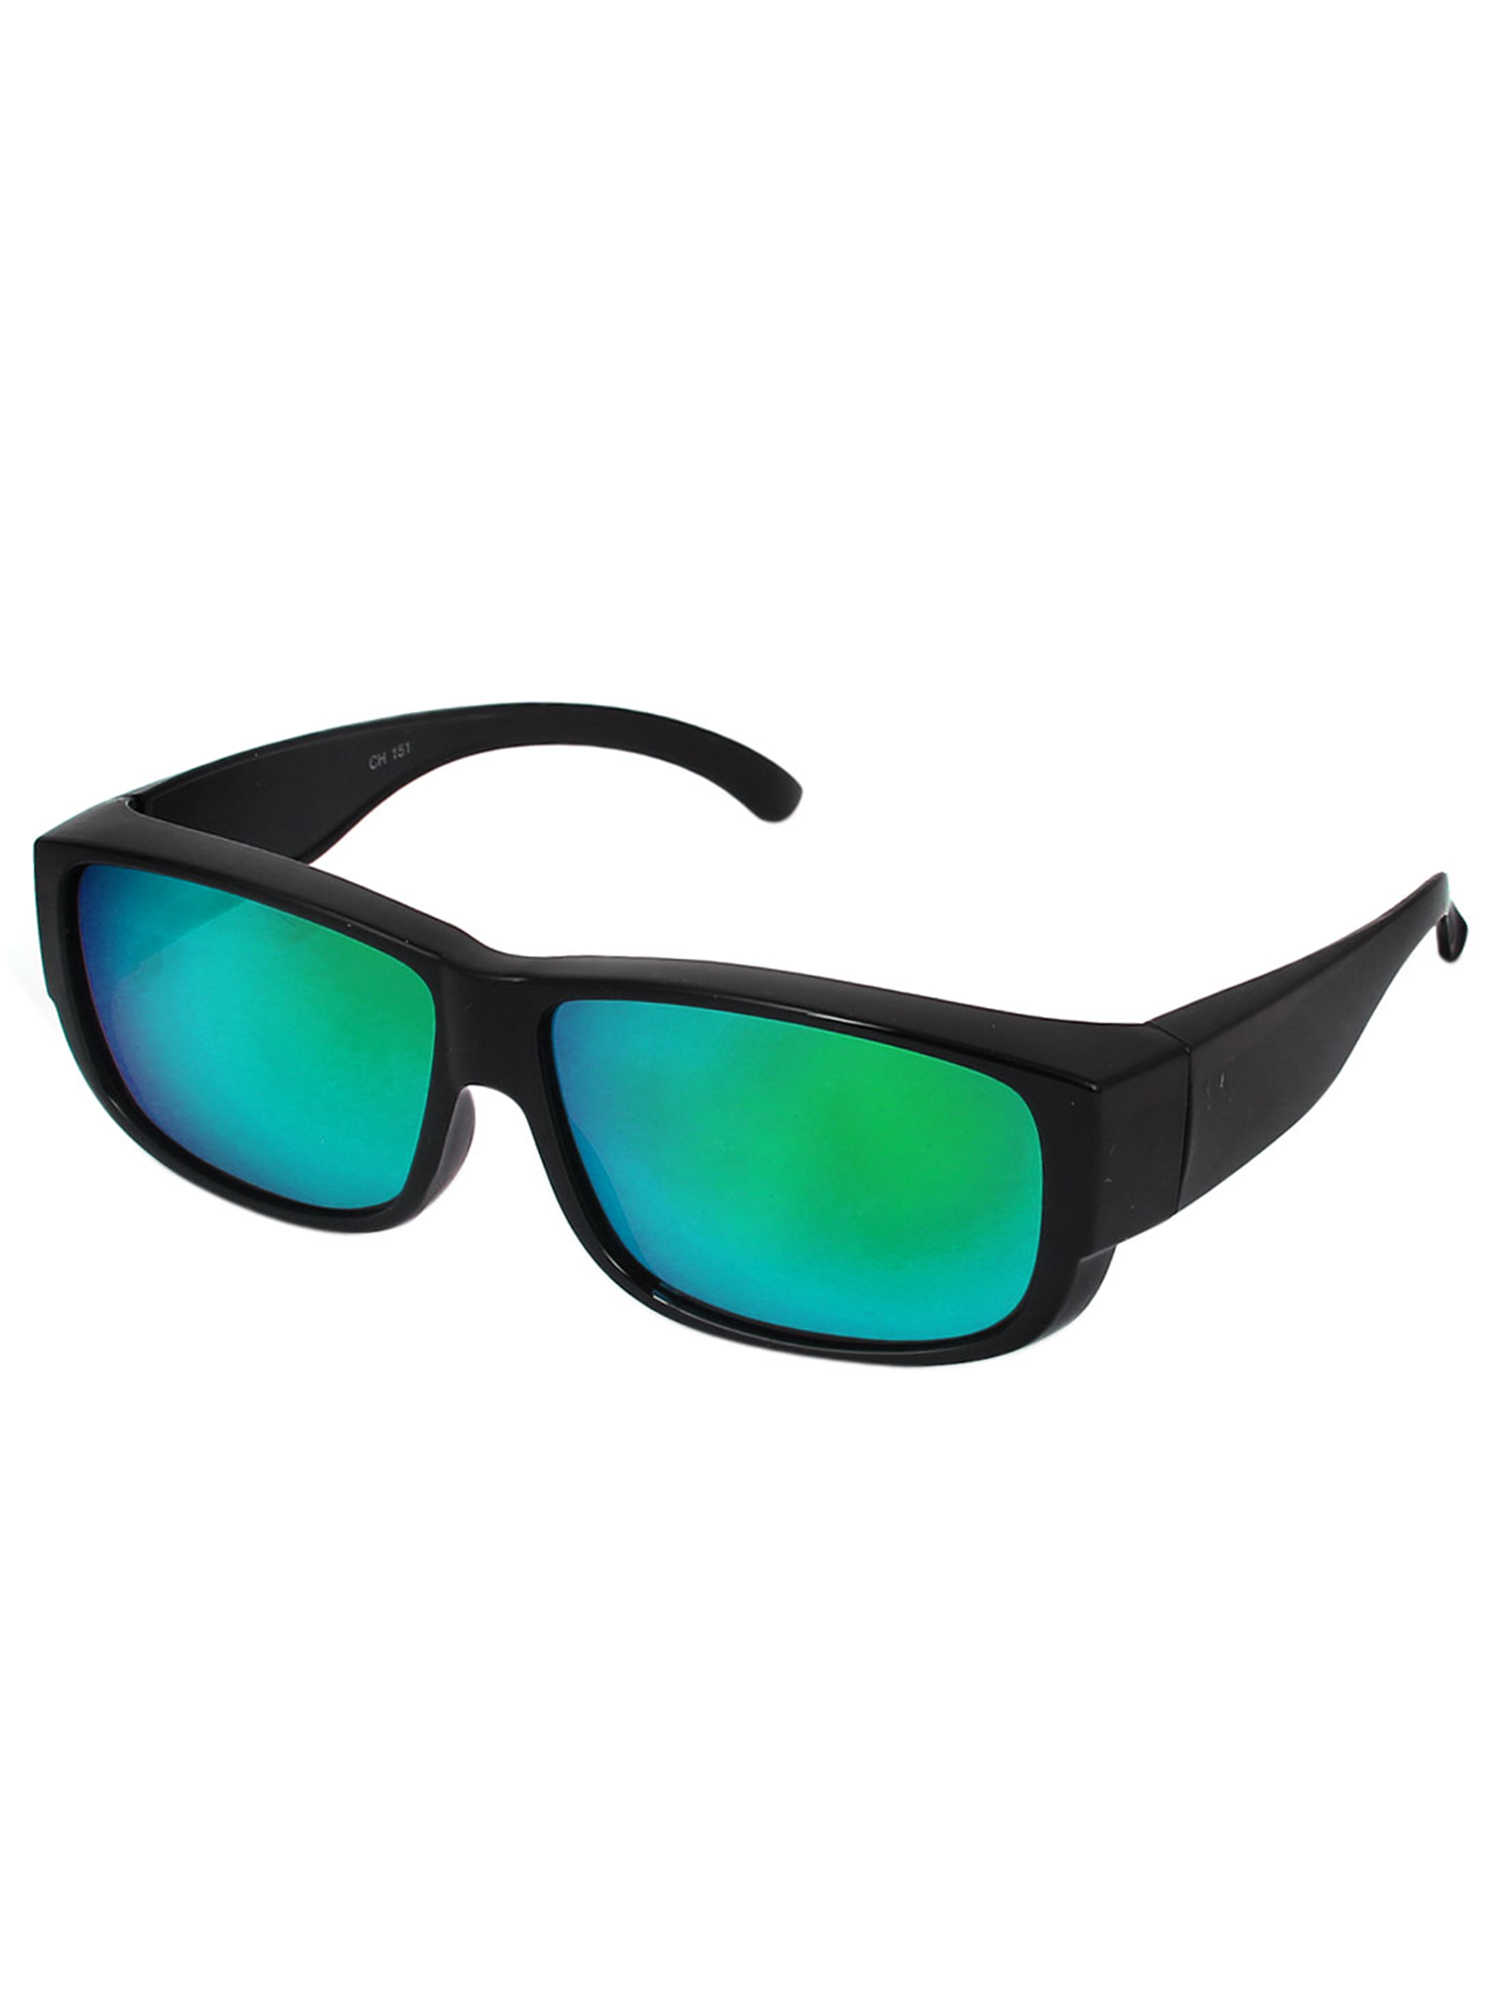 629ea8d8e112 Unique BargainsOutdoor Plastic Full Frame Single Bridge Polarized ...